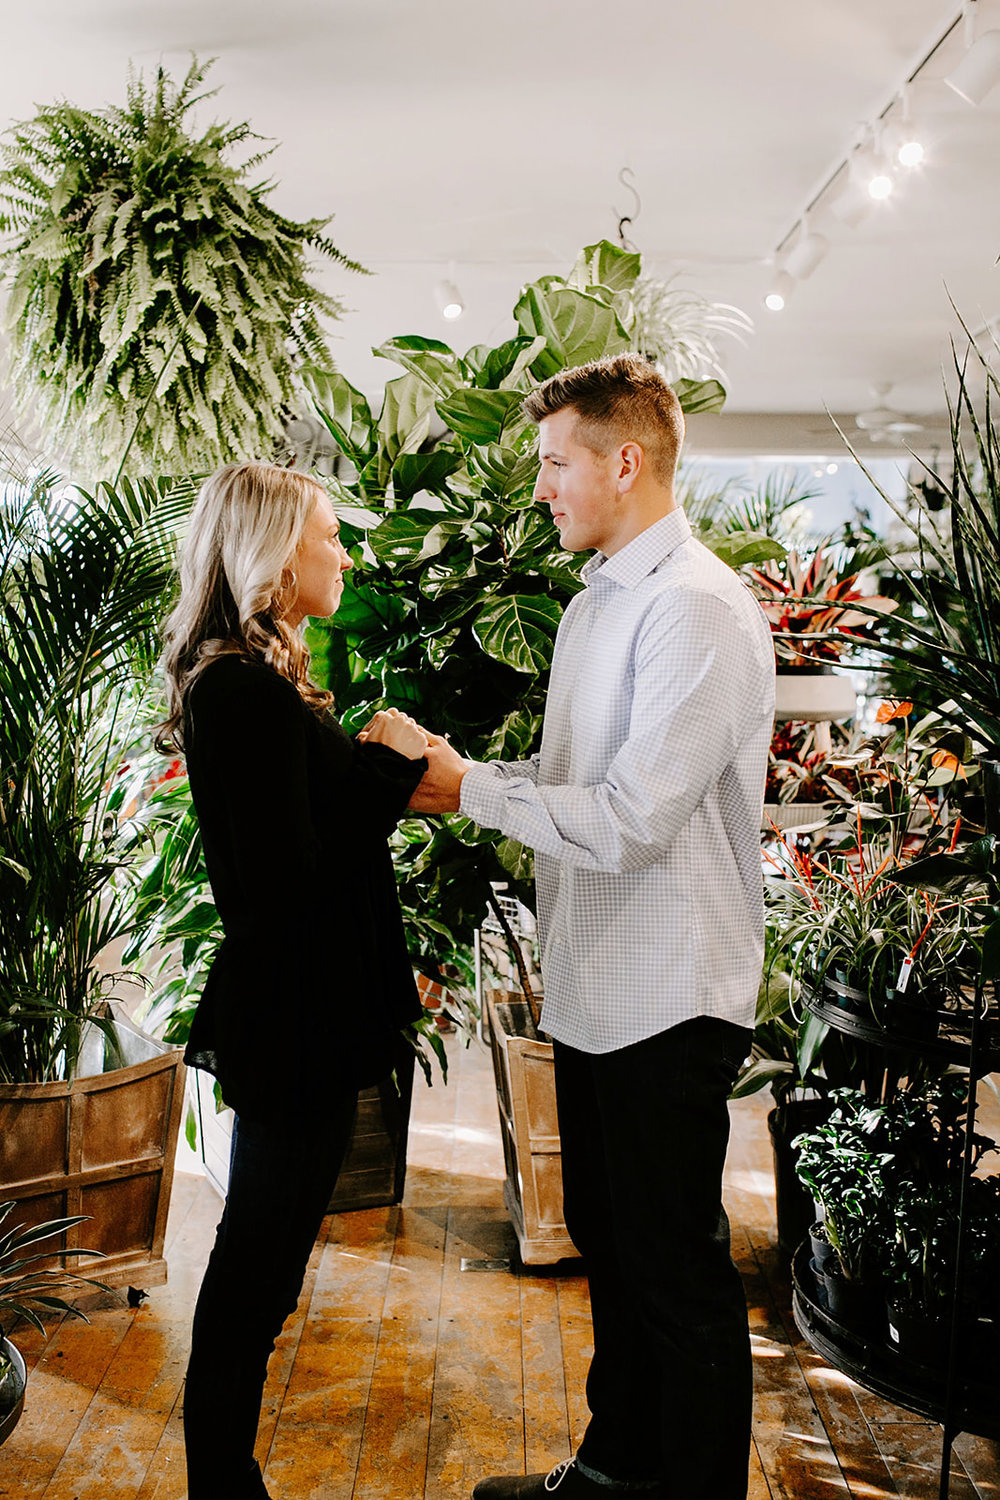 Lindy and JT Proposal at Allisonville Nursery in Indianapolis Indiana by Emily Elyse Wehner Photography LLC-22.jpg